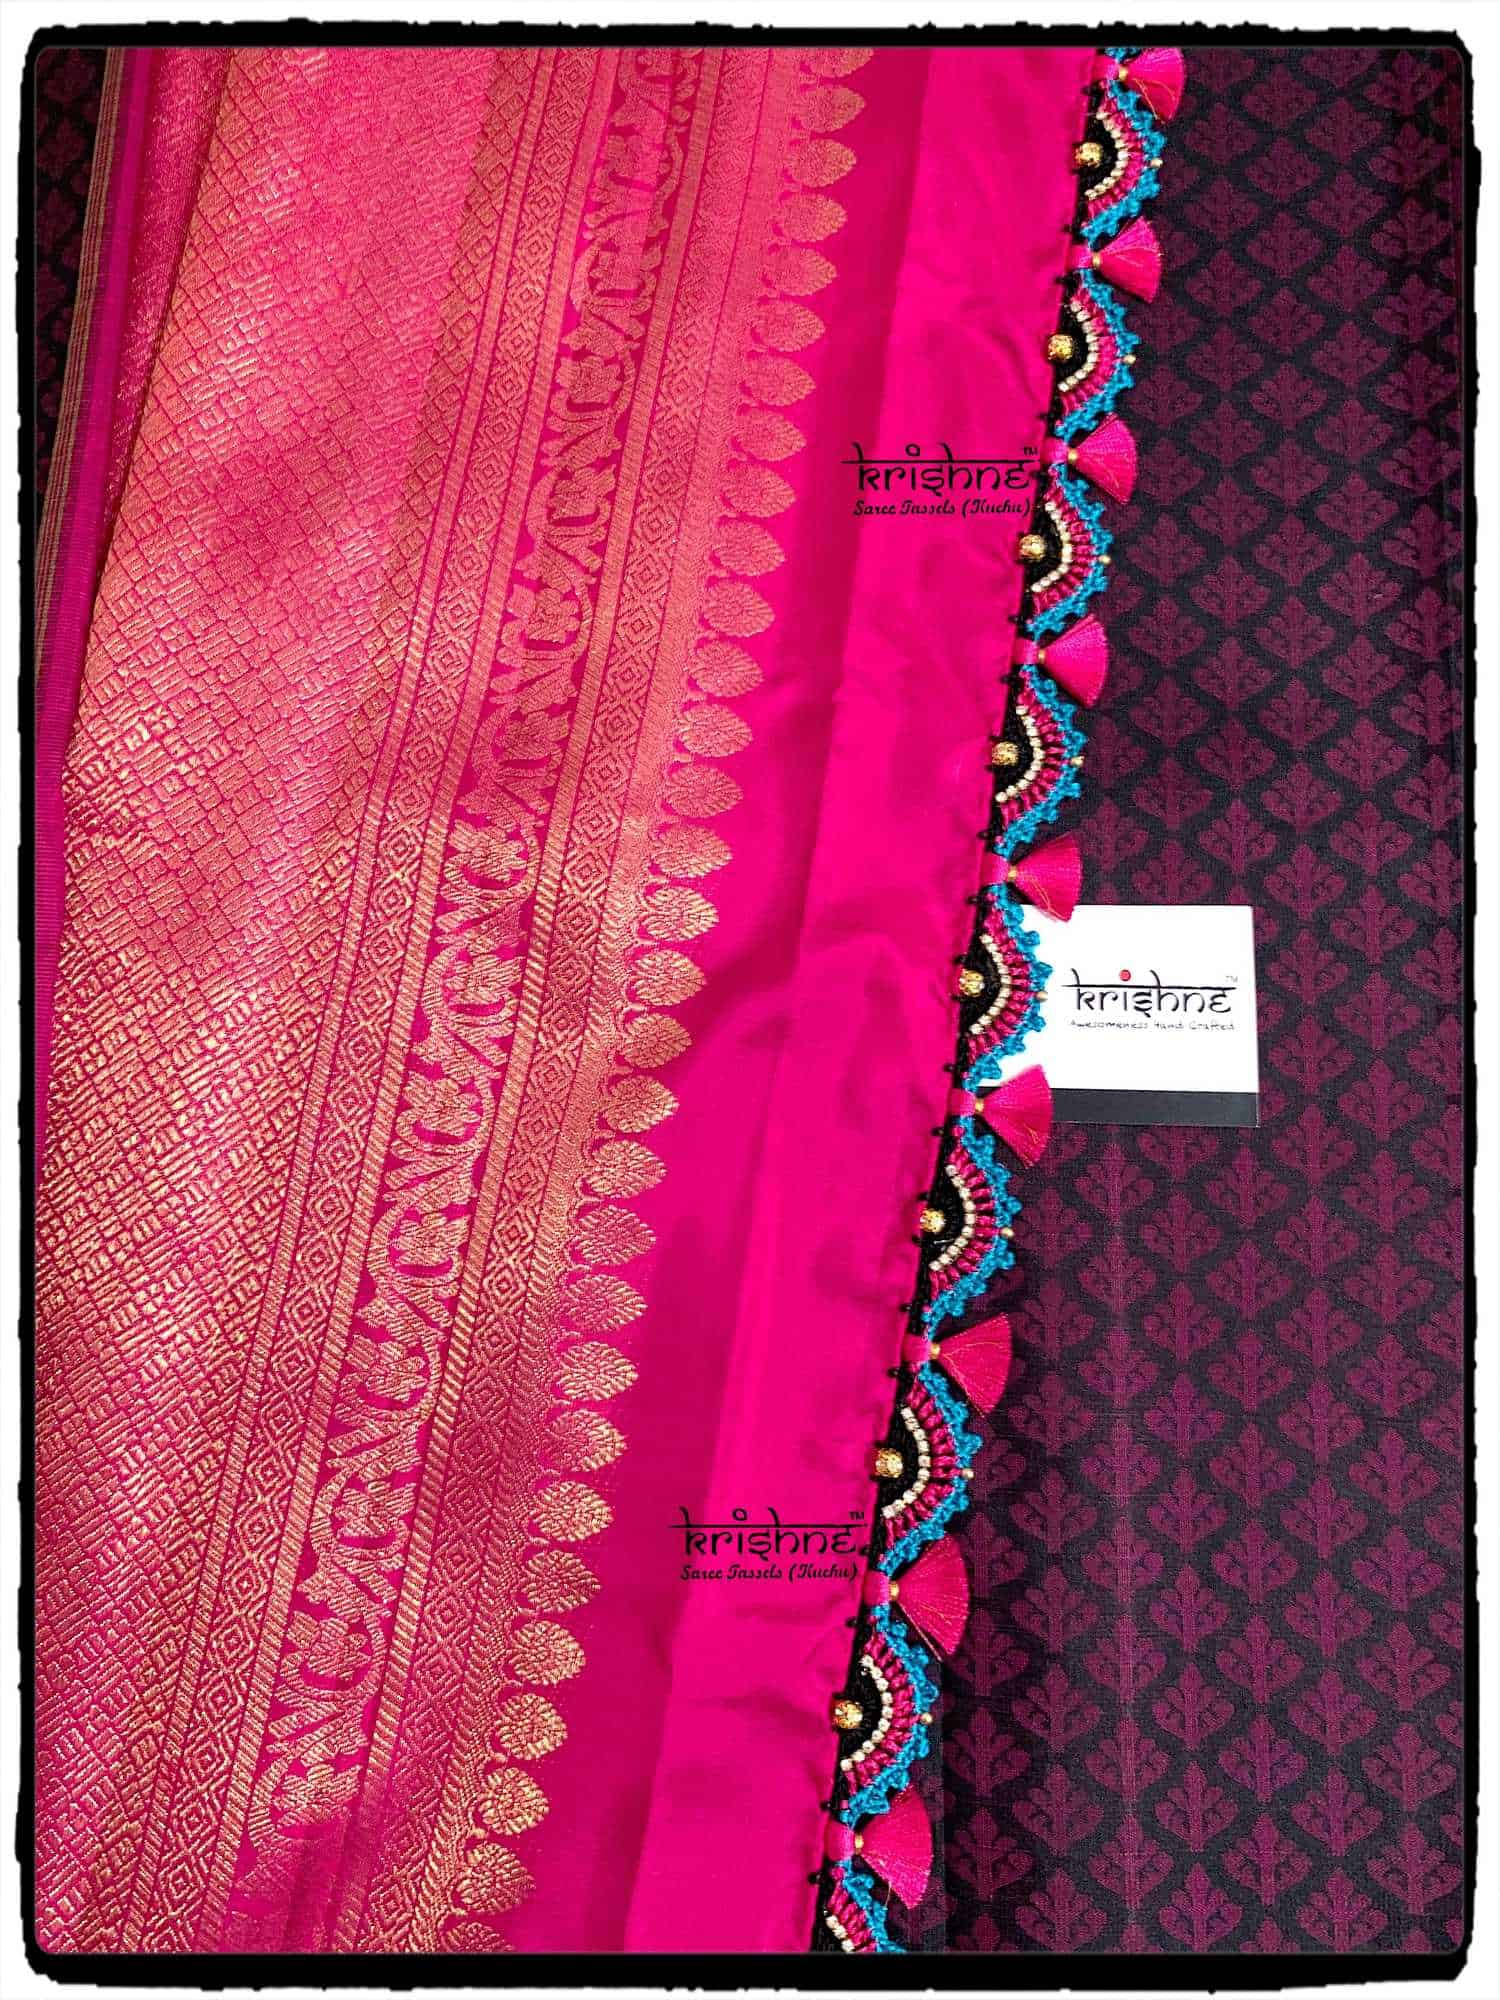 5e66955a45ca34 ... Krishne Saree Kuchu & Saree Tassels Photos, Shanthinagar, bangalore -  Kuchu Work Classes ...